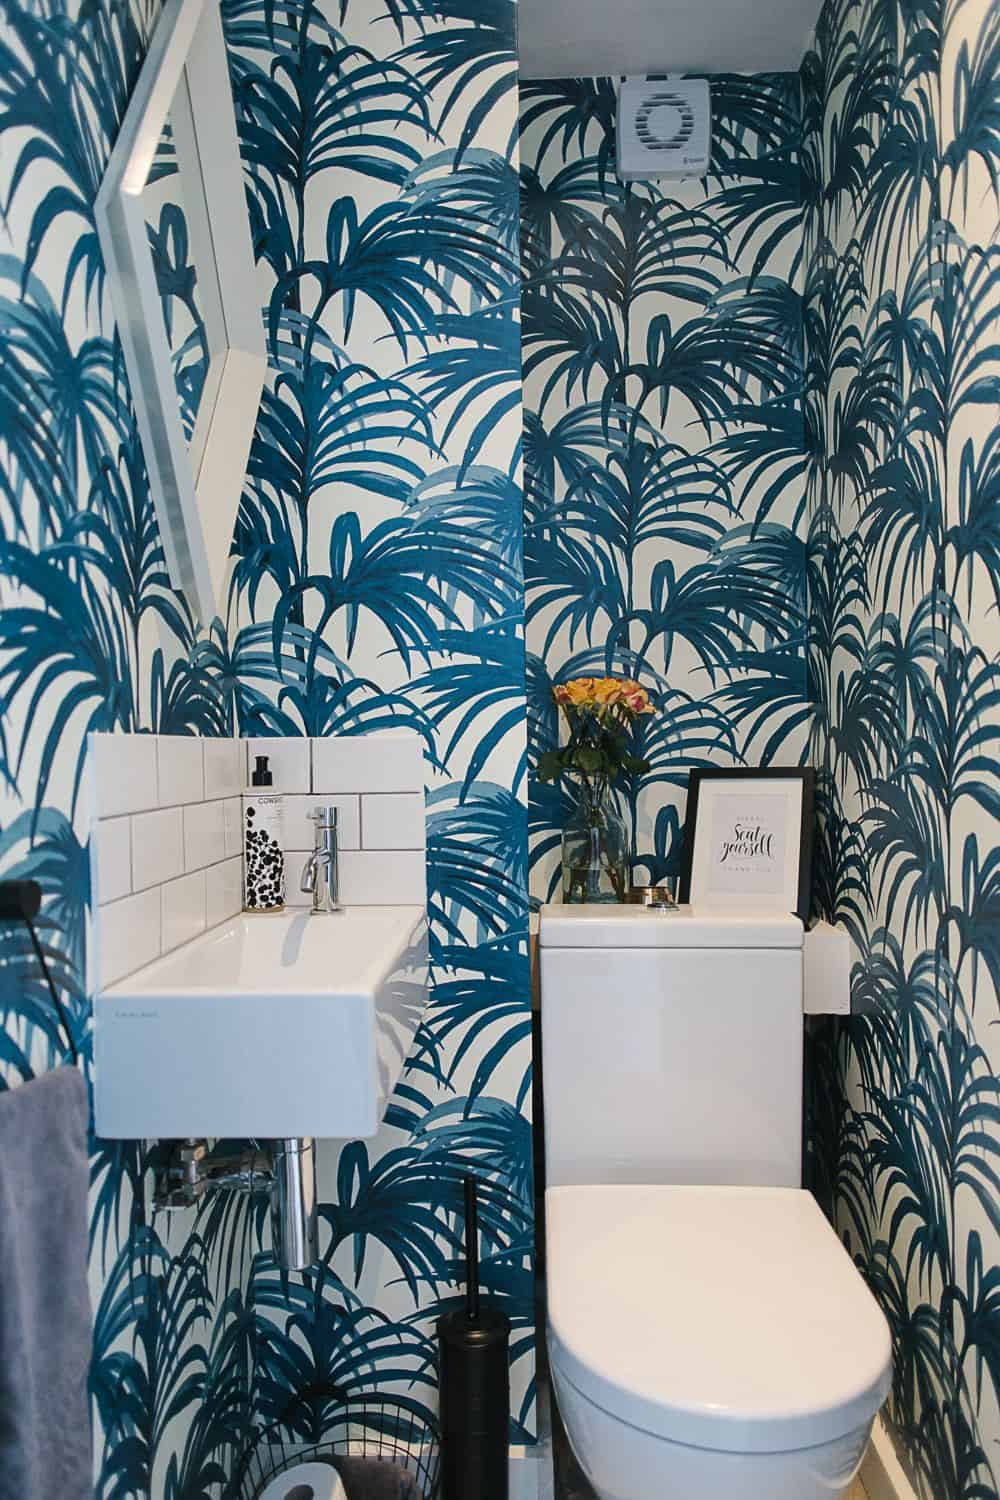 palm tree wallpaper Powder Room Decorating Ideas That Are Anything But Boring